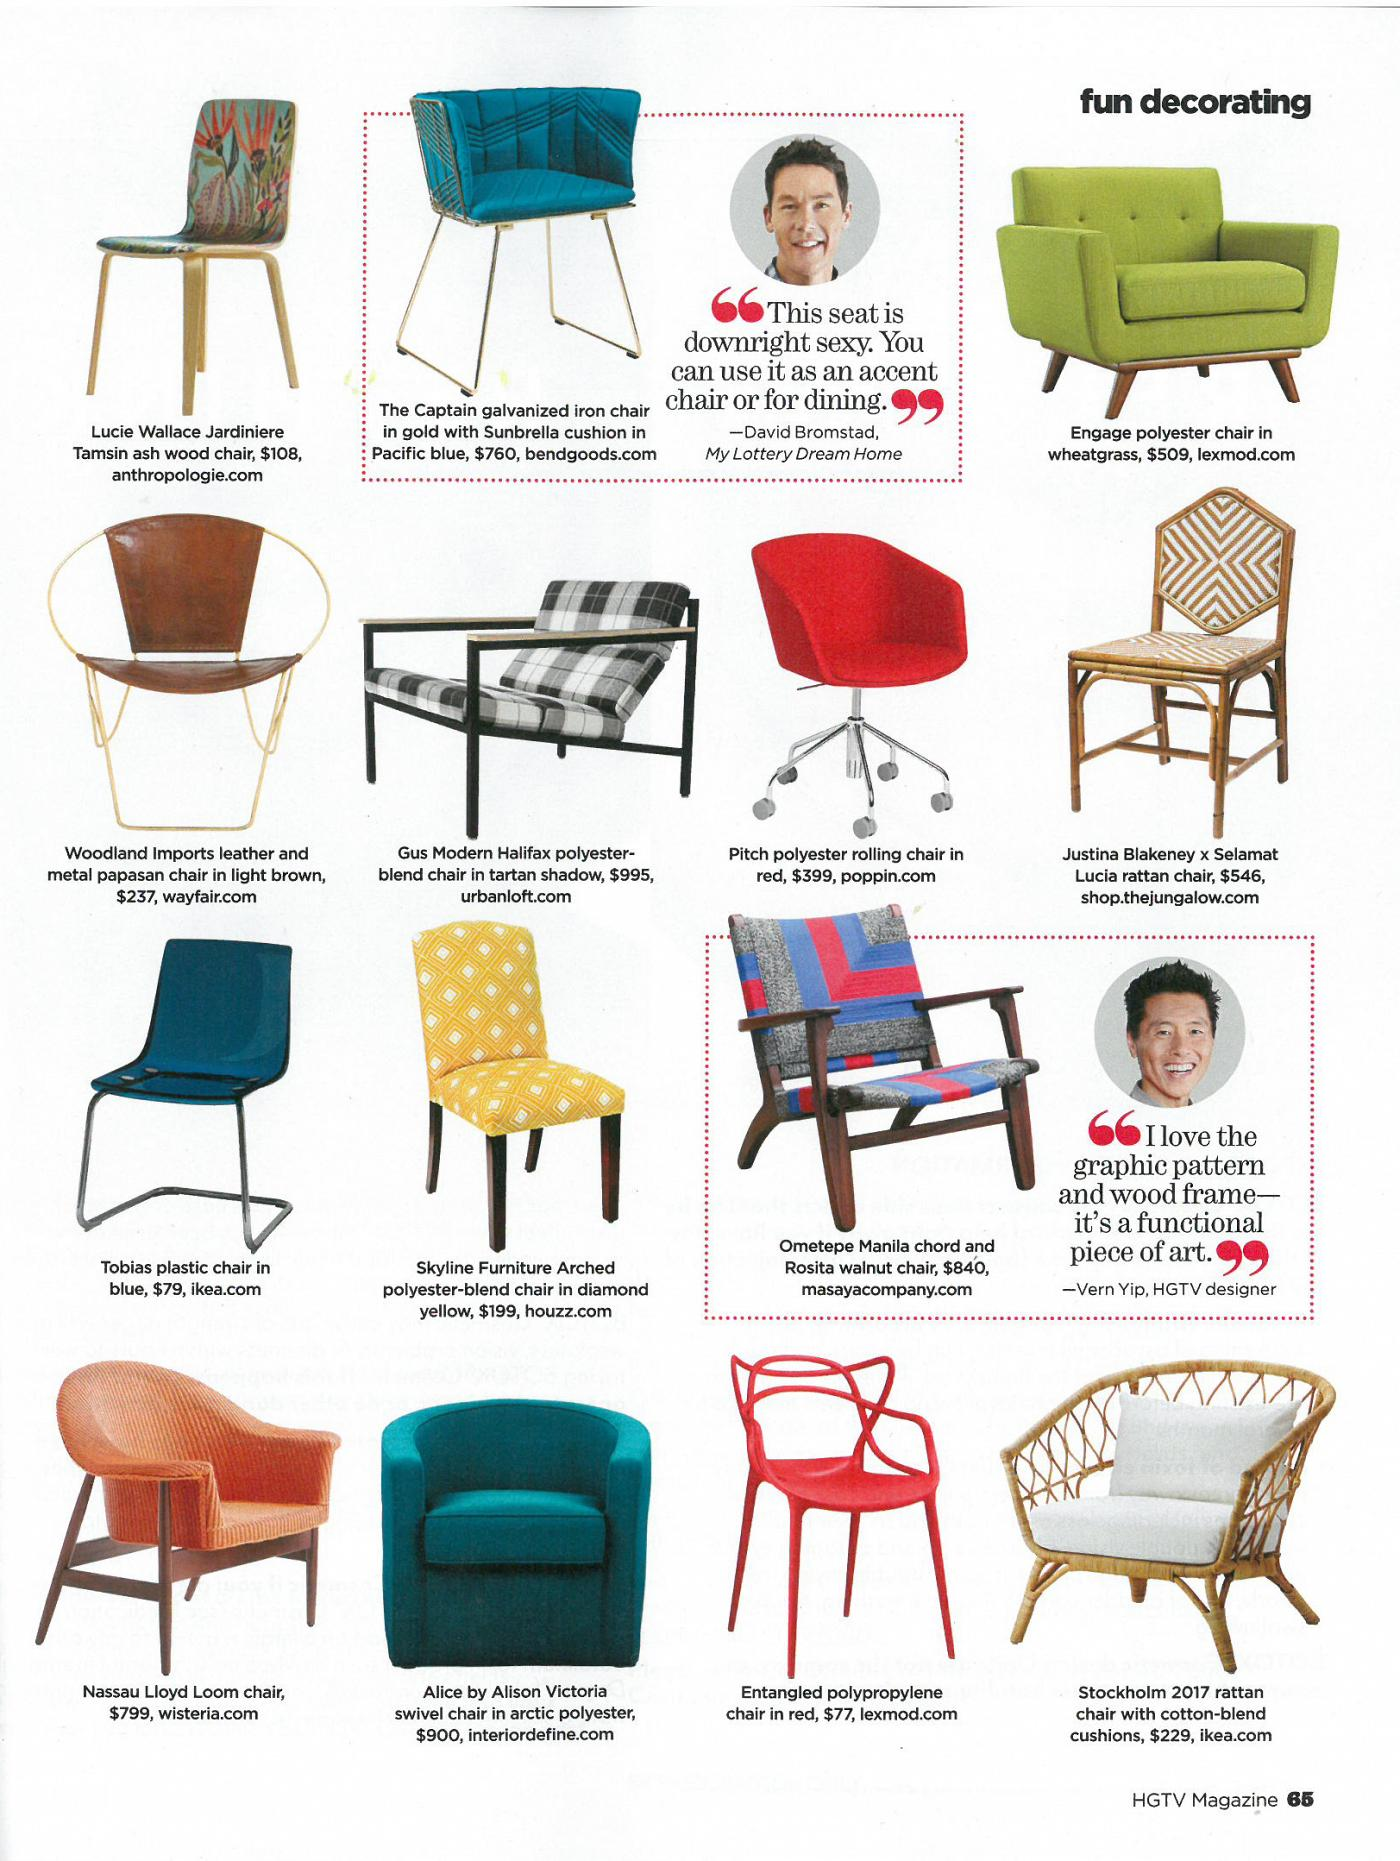 hgtv magazine 2014 furniture. Hgtv Magazine 2014 Furniture. - October 2017 Furniture